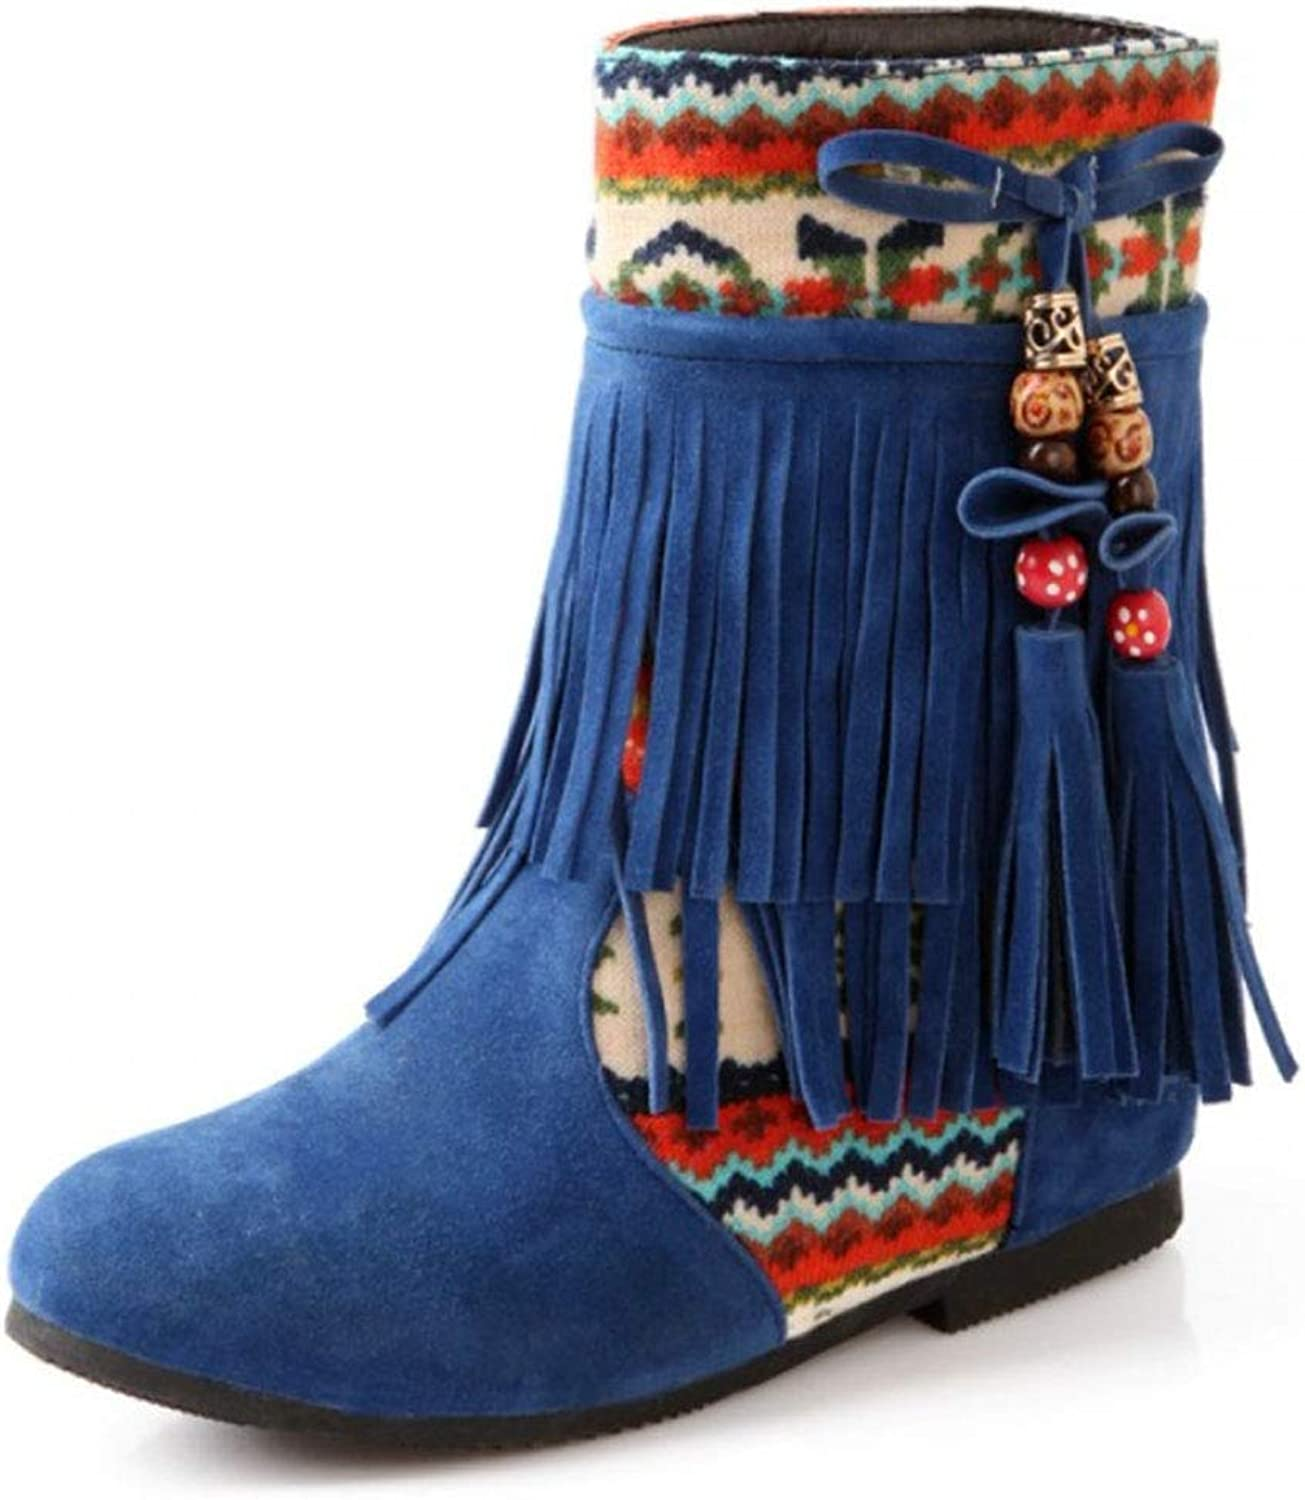 Women's Short Boots Fur Lined Round Head Wedge Ankle Boots with Bohemian Ethnic Style Fringed Boots Autumn and Winter